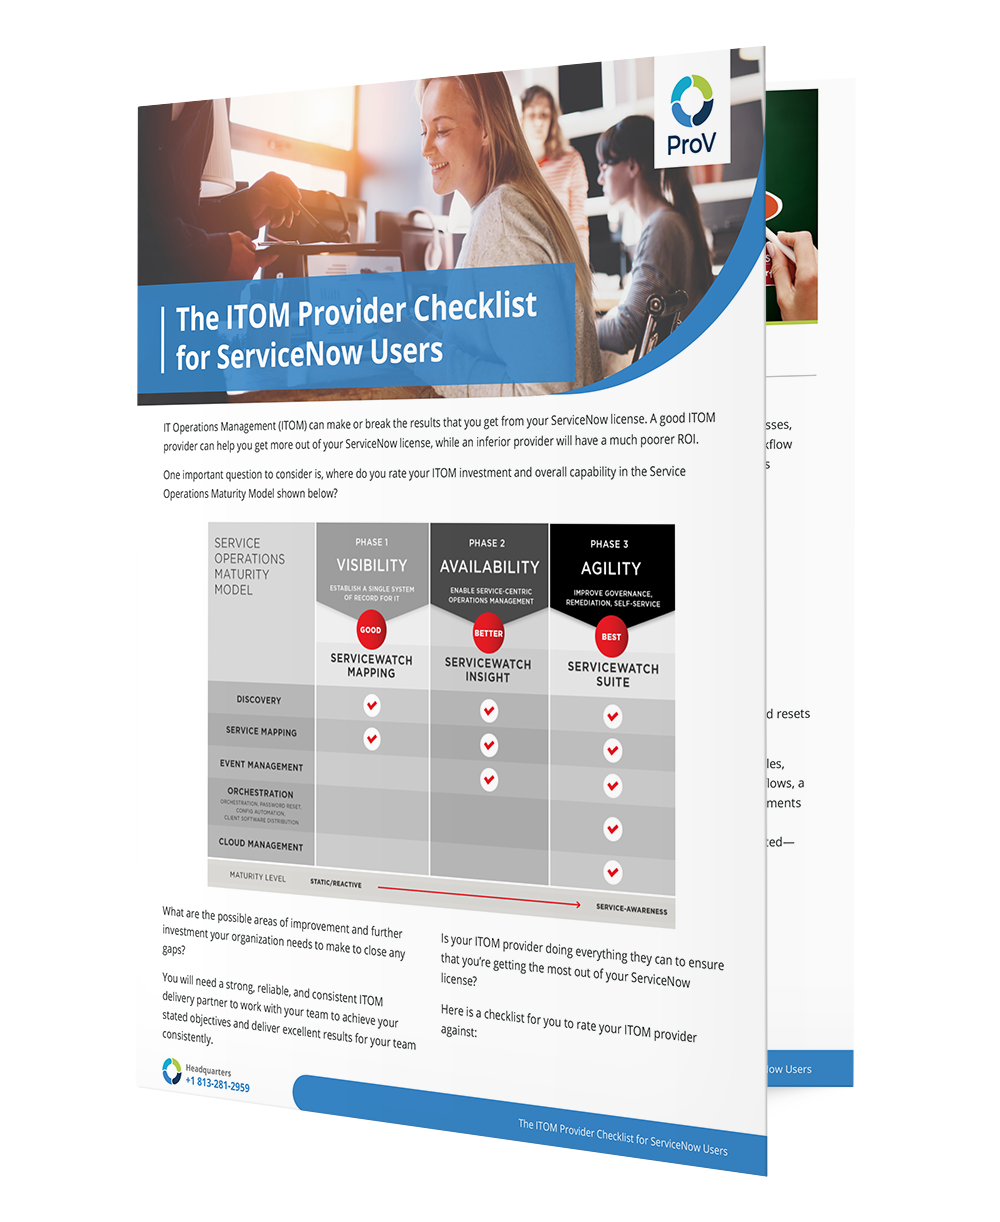 the-itom-provider-checklist-for-servicenow-users-cover